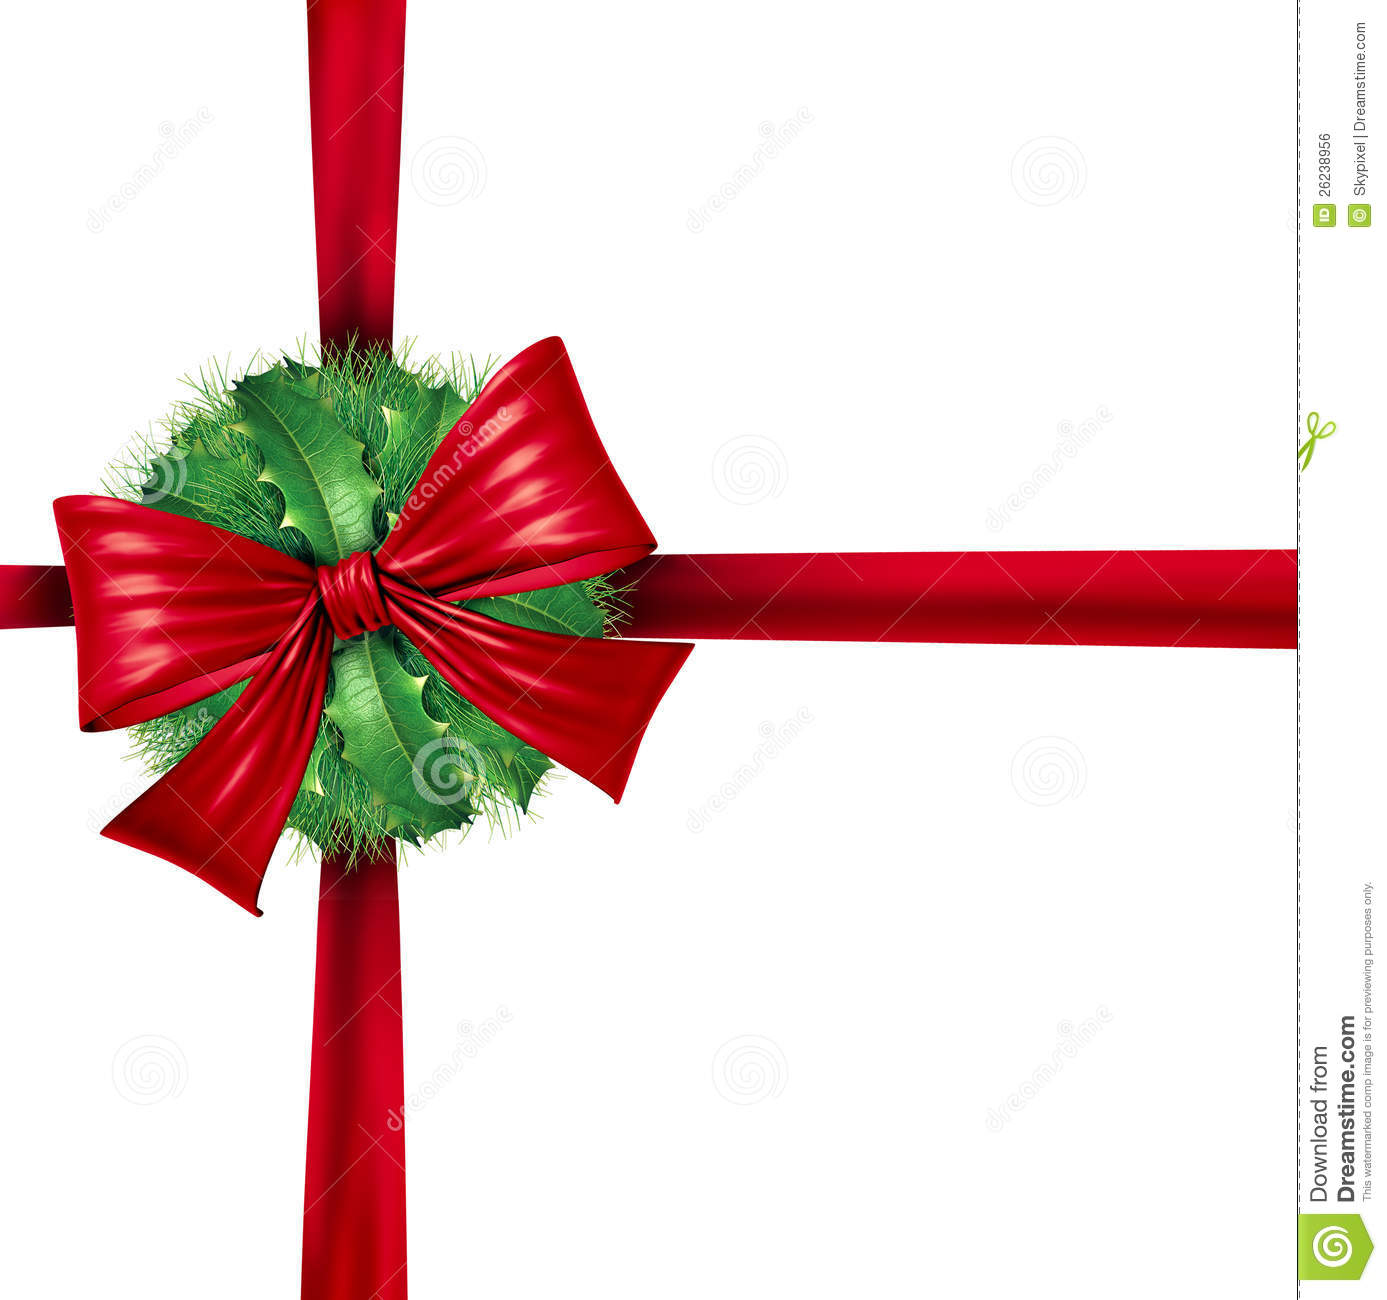 Red string bow clipart suggest